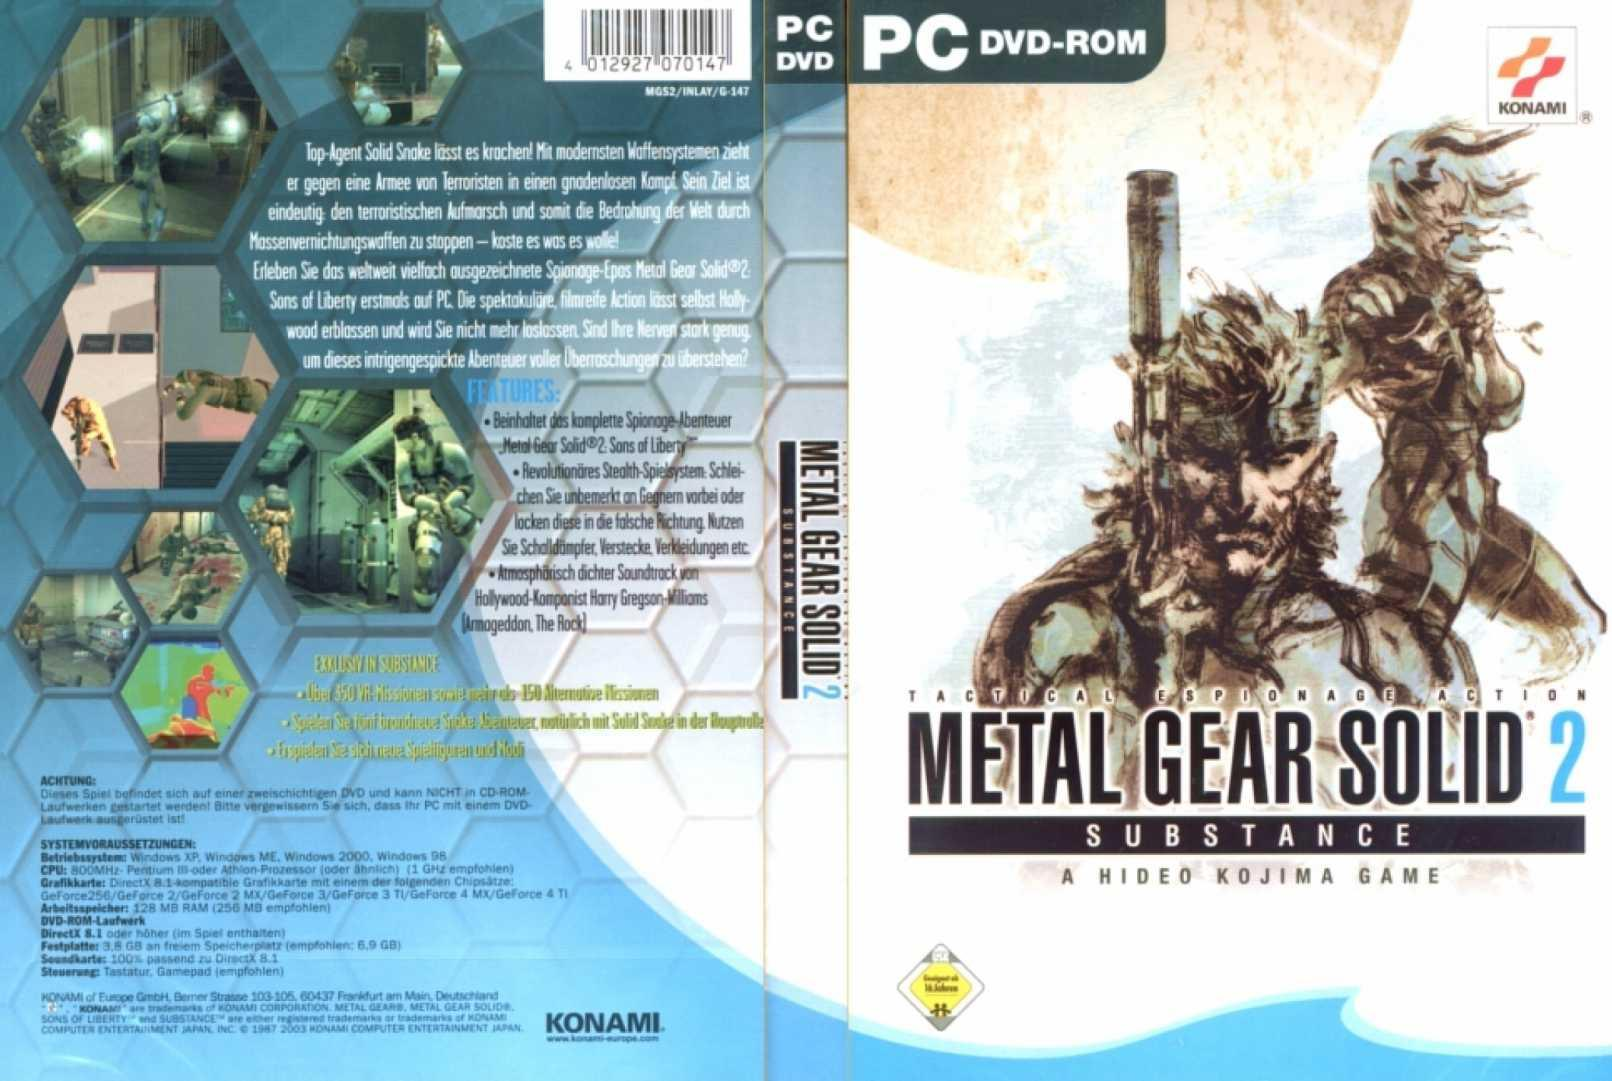 Metal Gear Solid 2 Covers MGS2 (PS2/Playstation 2/PS3